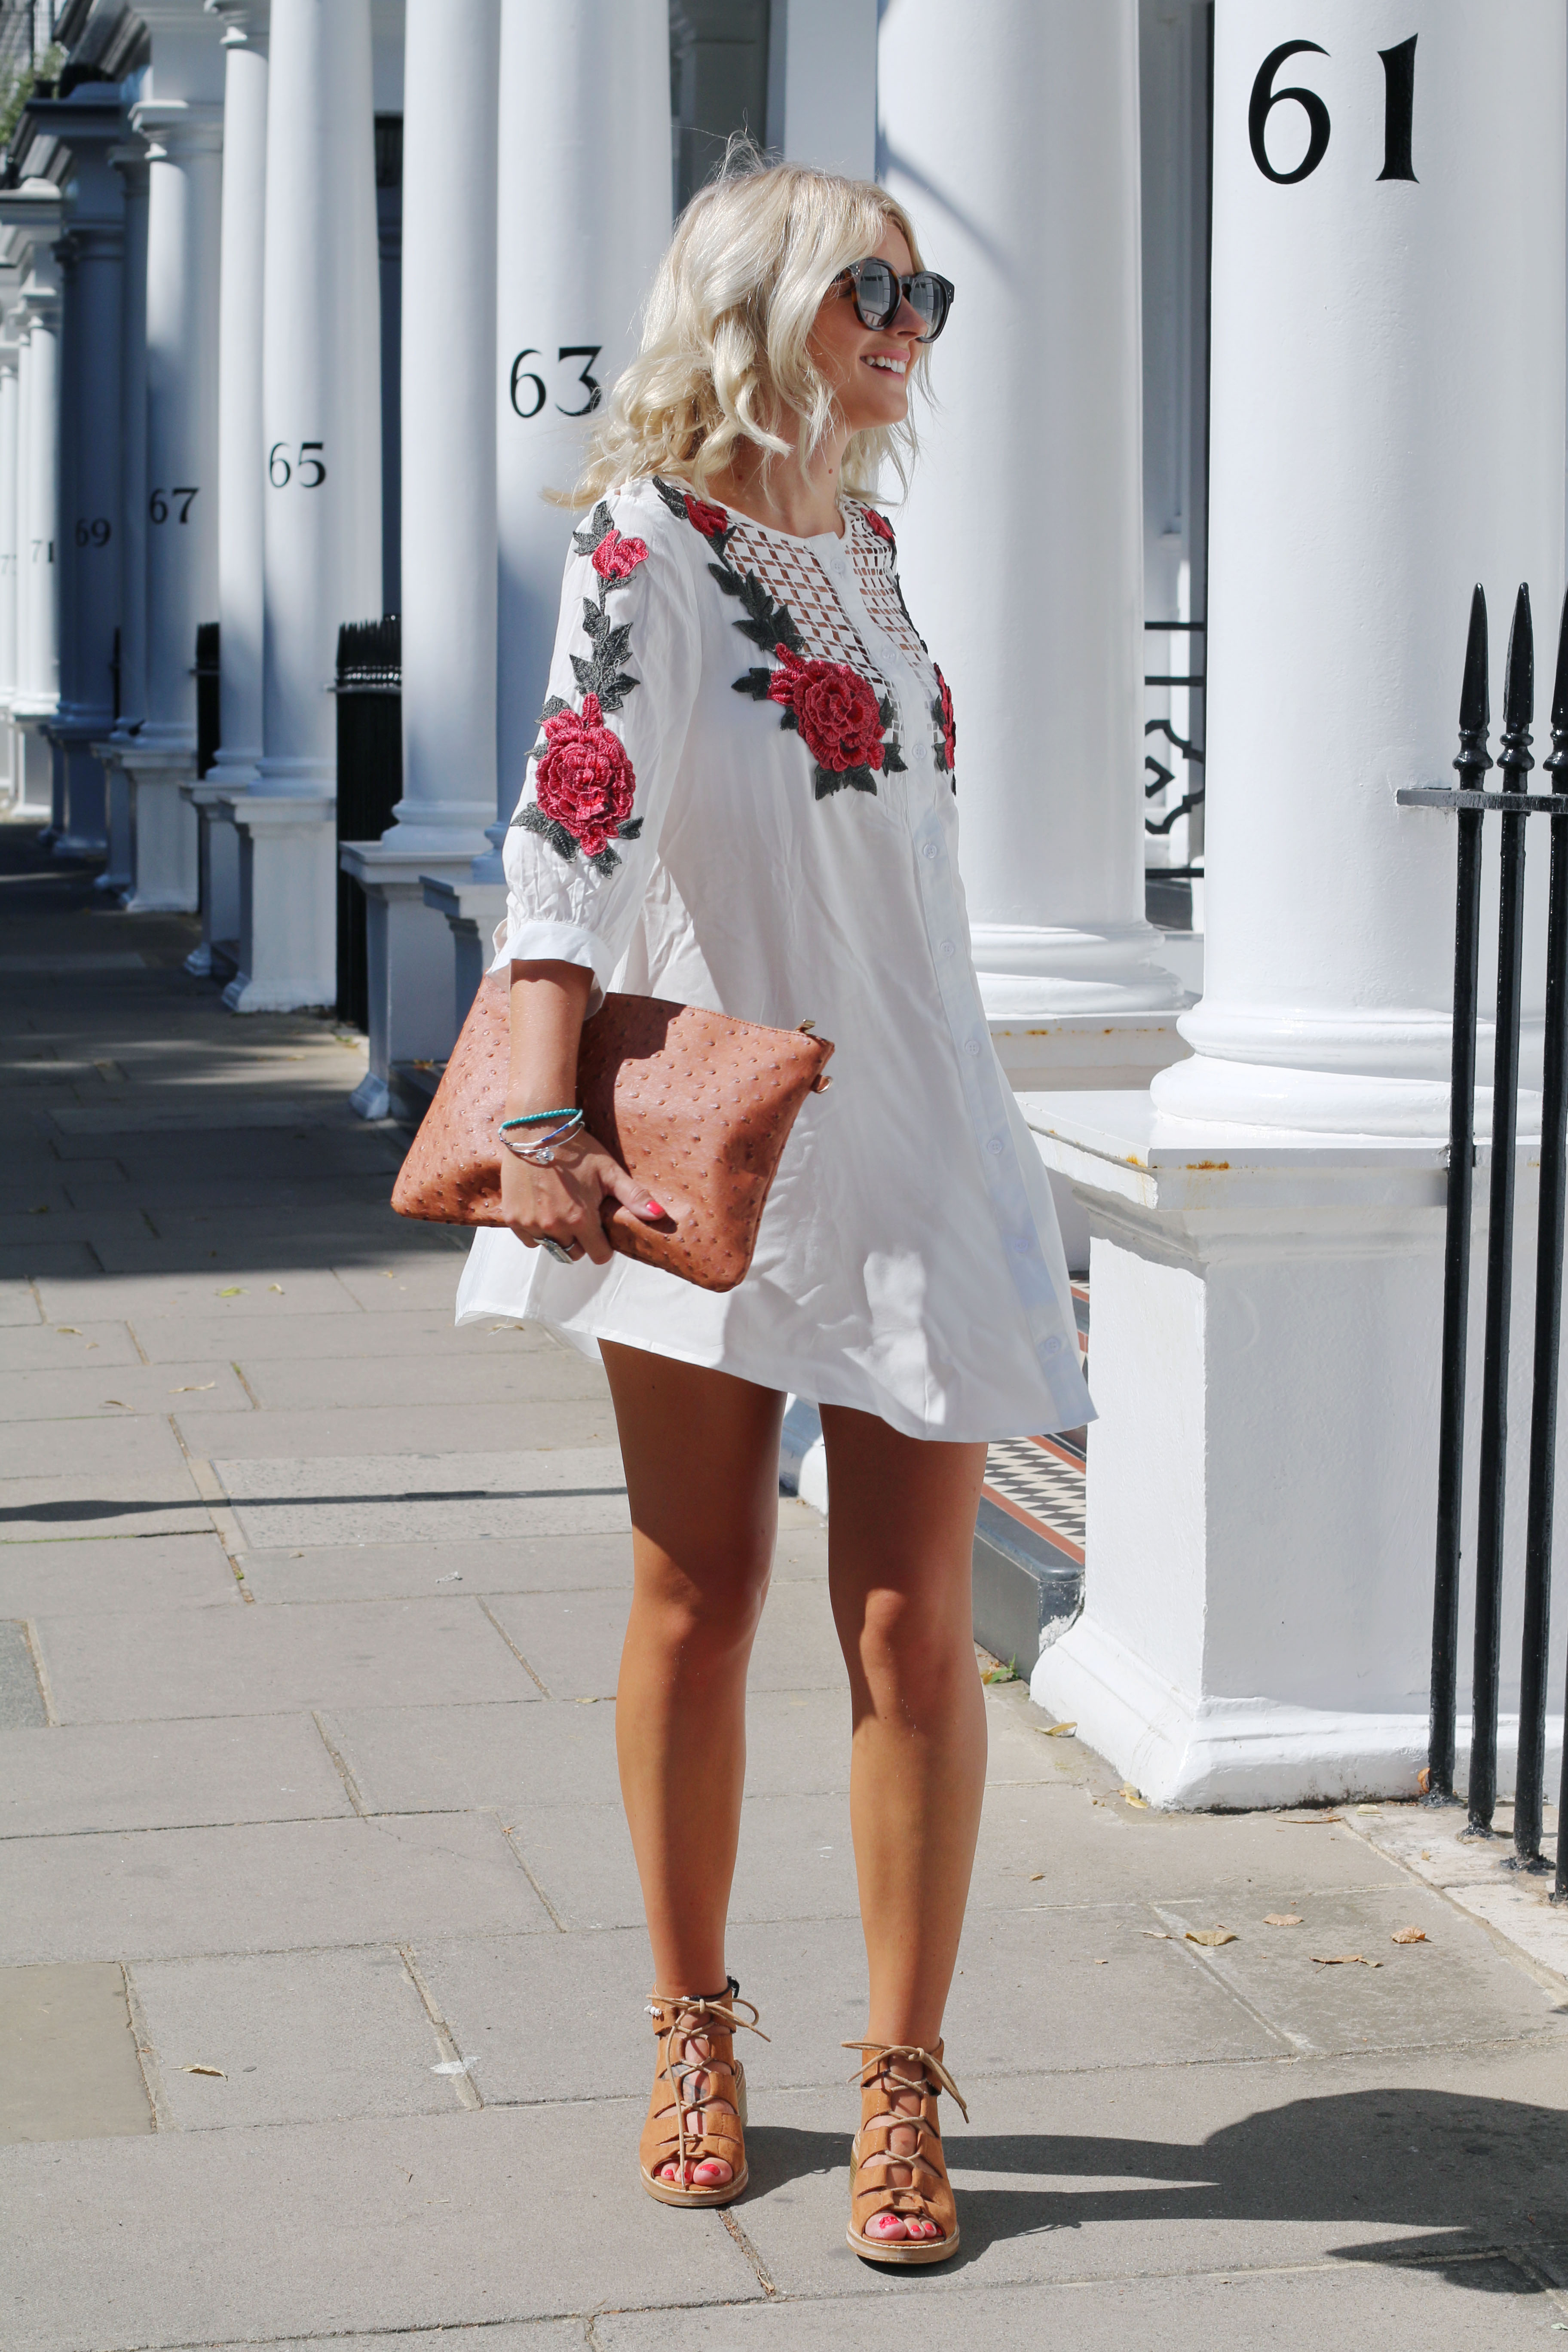 laura byrnes, lauras little locket, lydia collins photography, blonde wavy hair, LOB, ash wavy hair, south kensington, BOOHOO , Boohoo Petite Embroidered Longline Shirt, embroidery, rose detail, white longline shirt, tan lace up sandals,